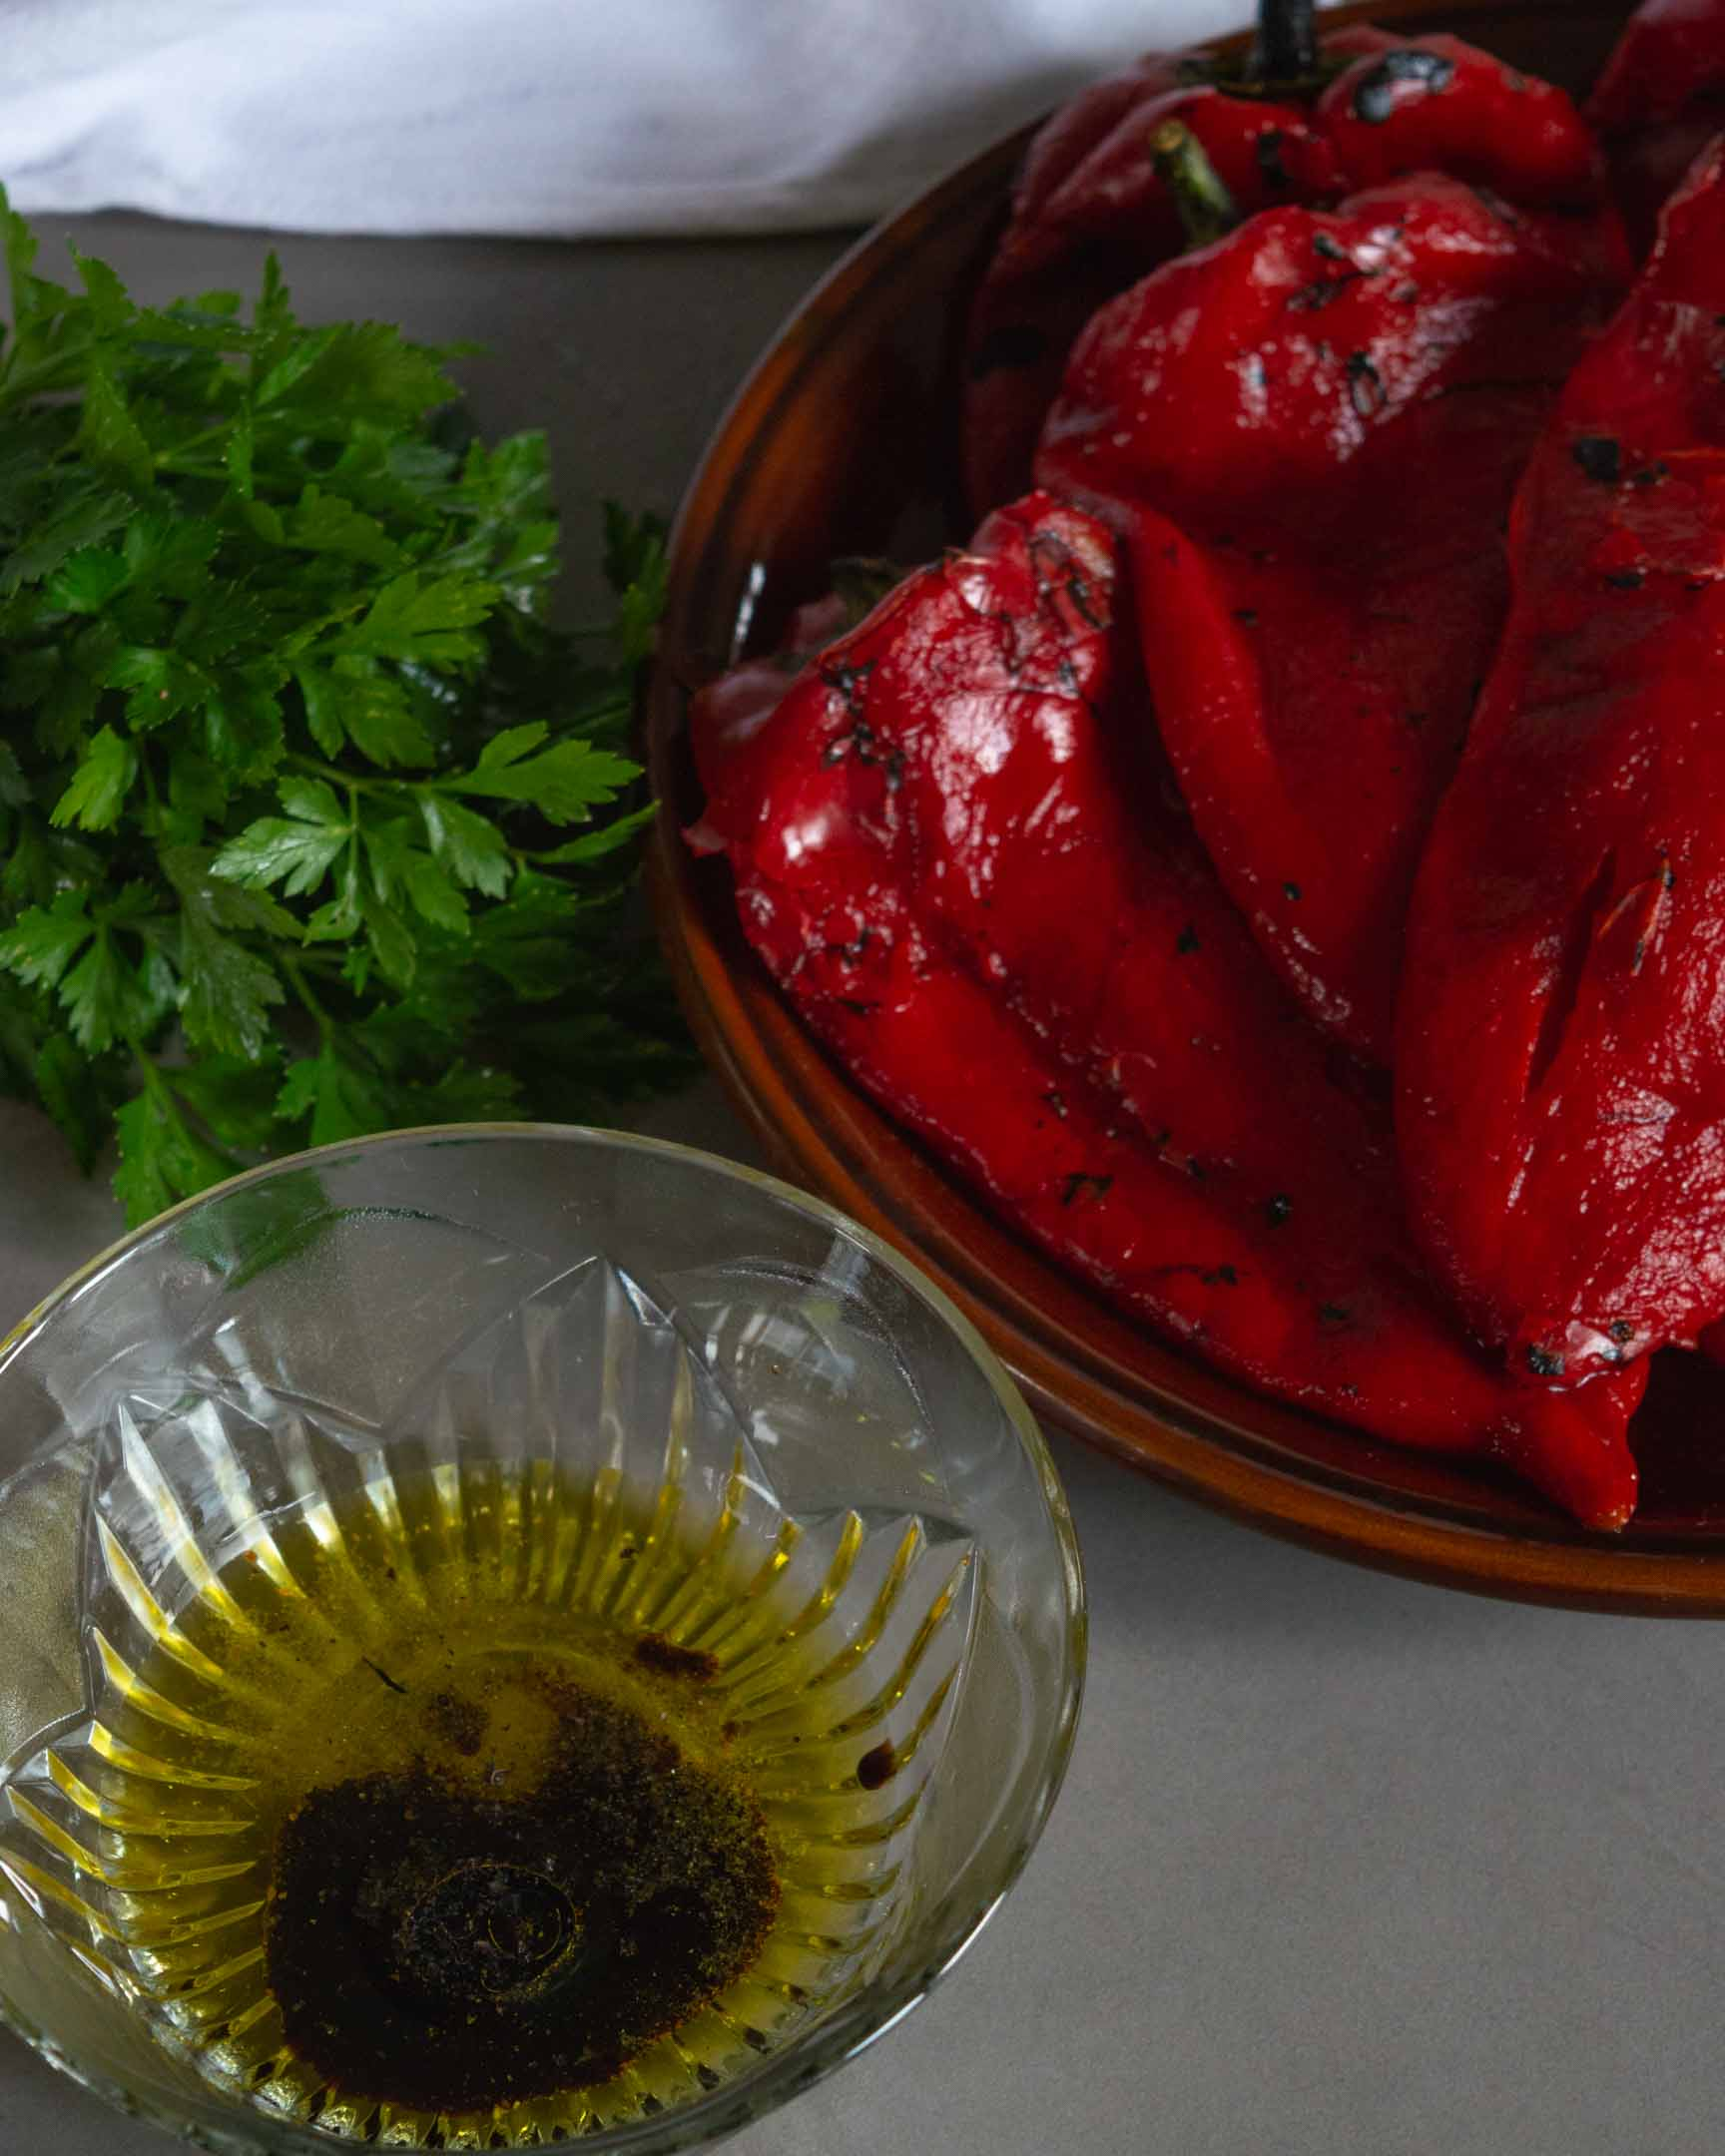 parsley, olive oil, balsamic vinegar and roasted red peppers before combining